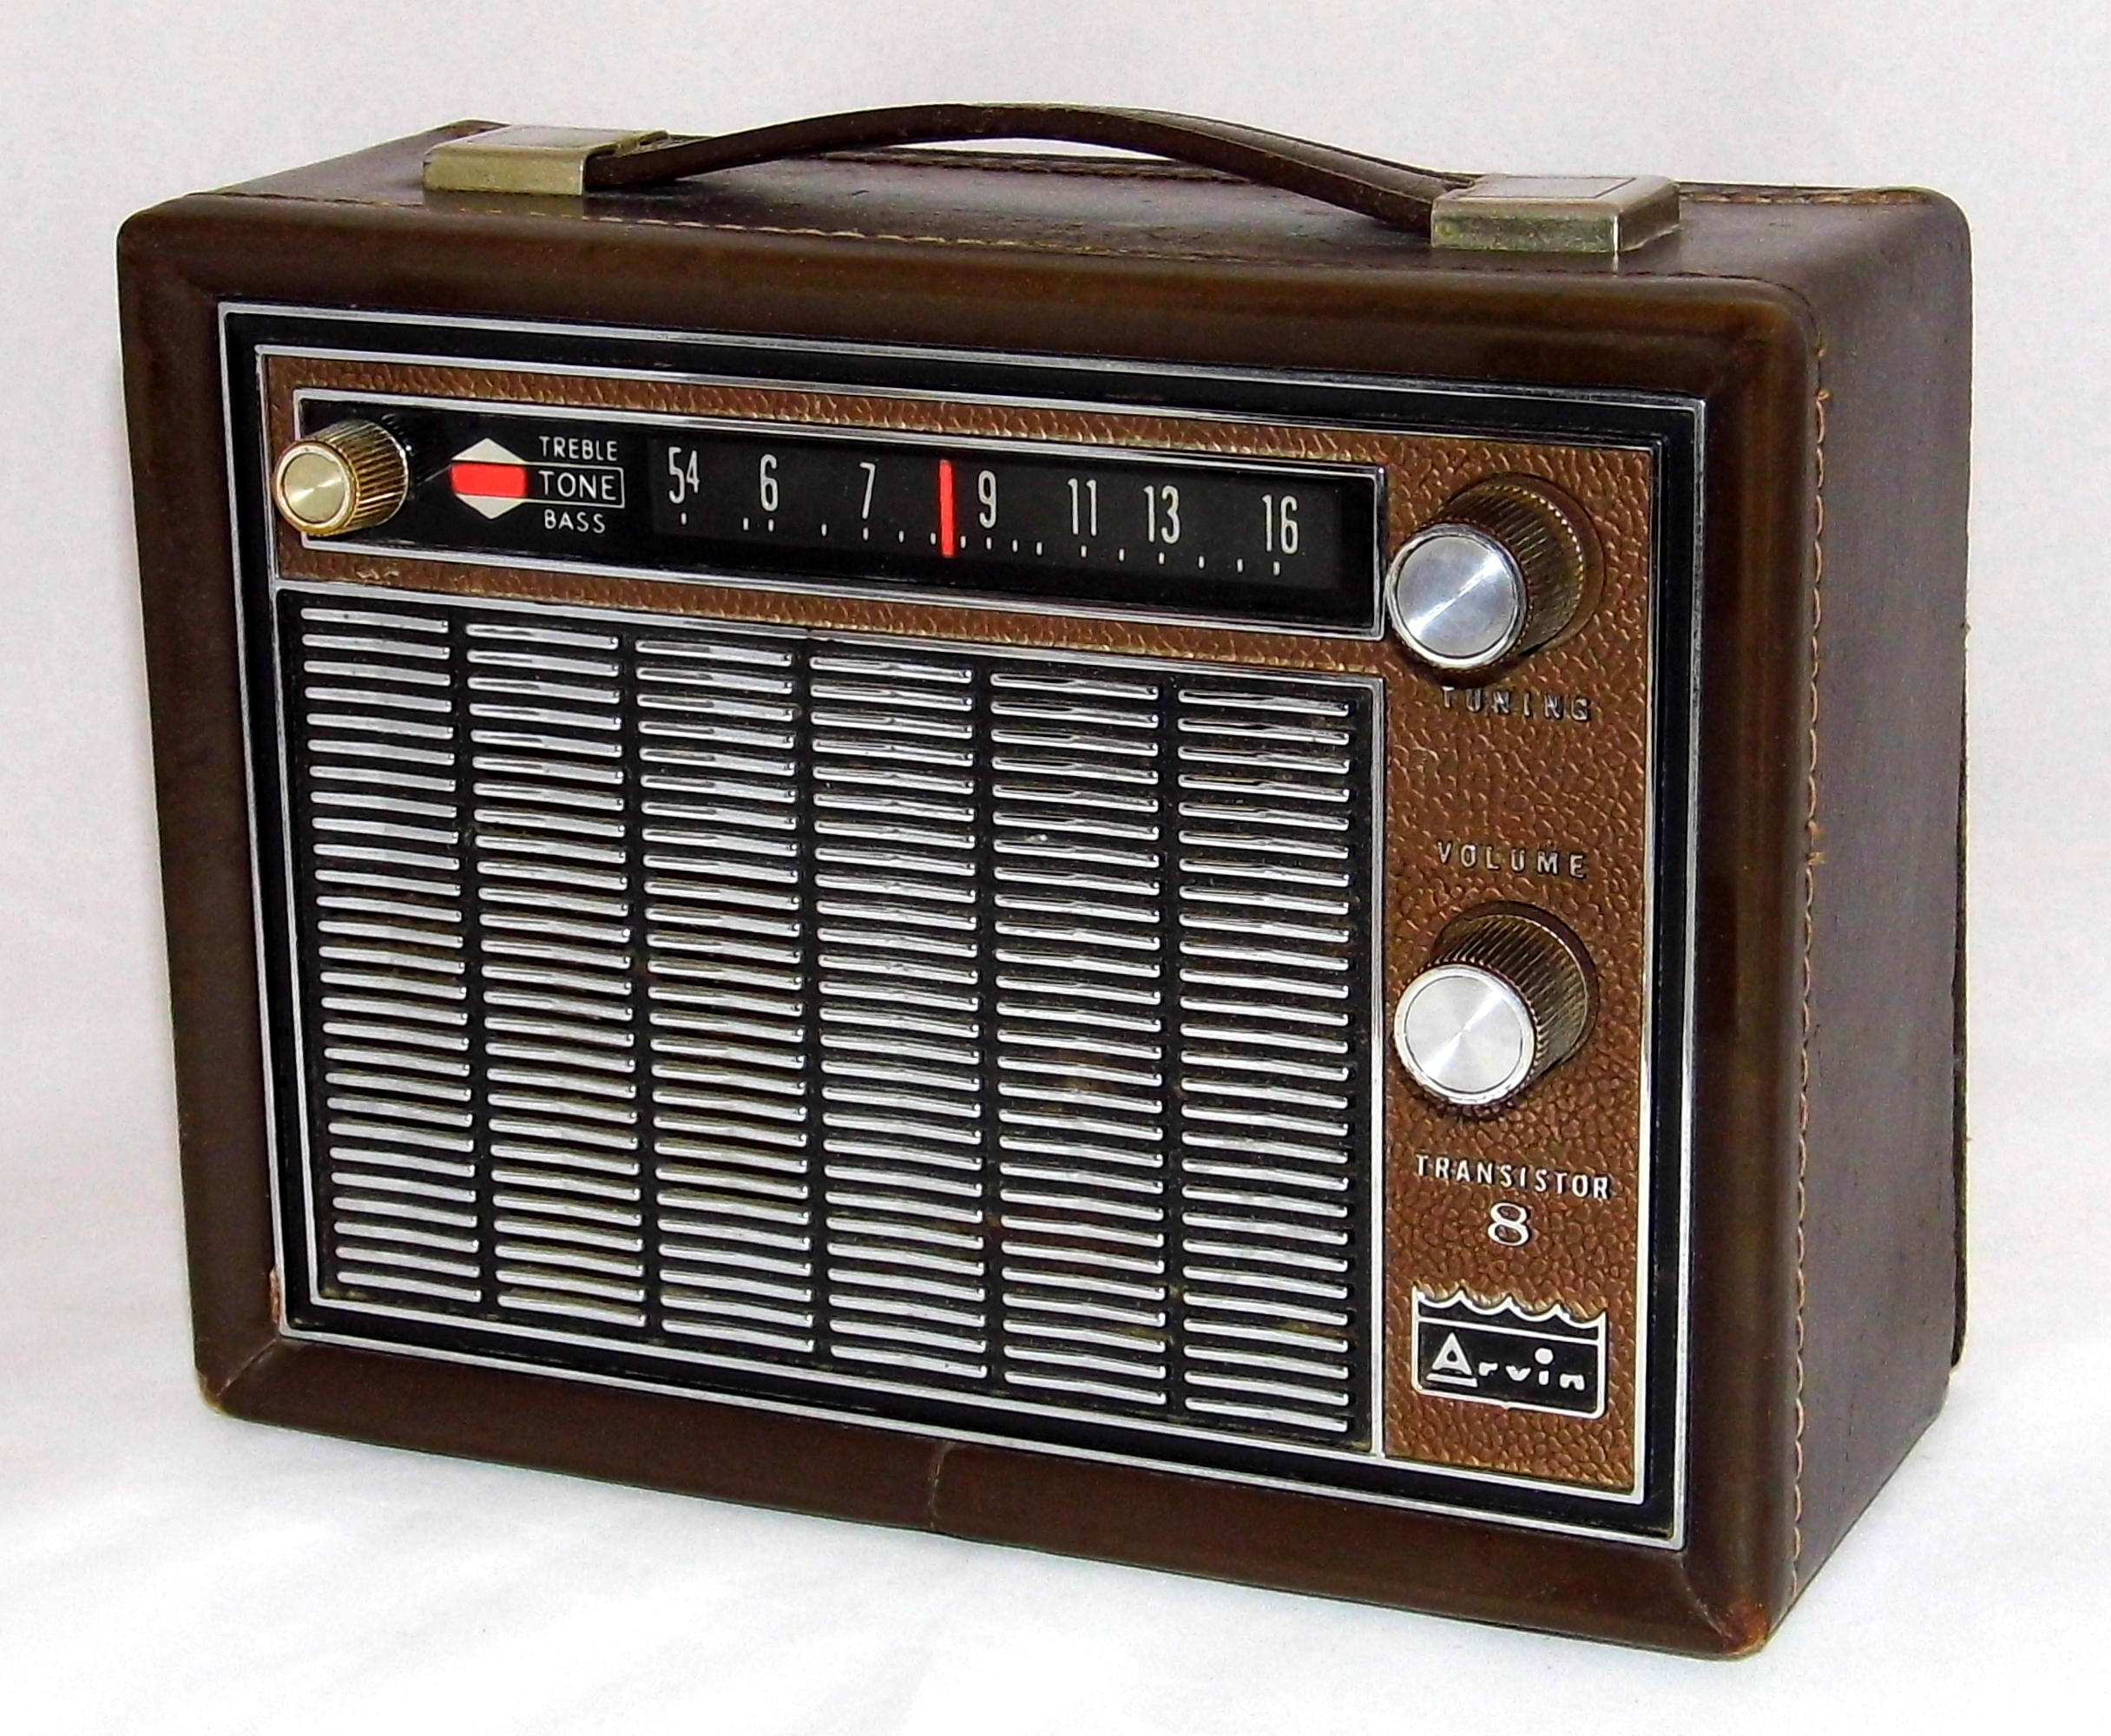 This type of radio is called___?